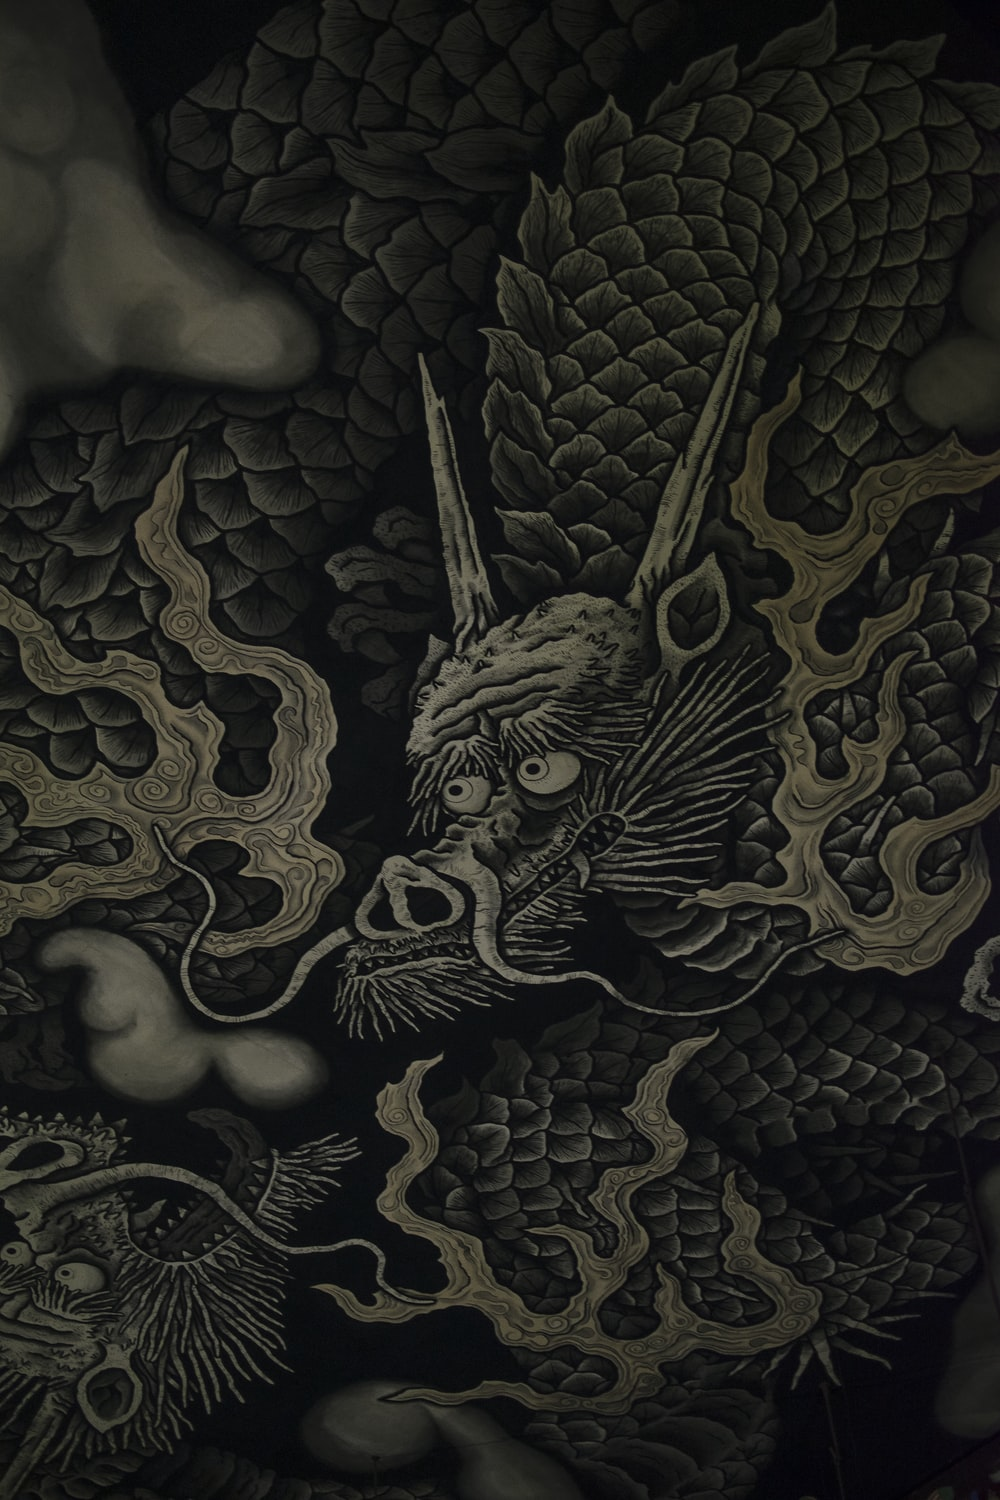 black and beige dragon-printed textile